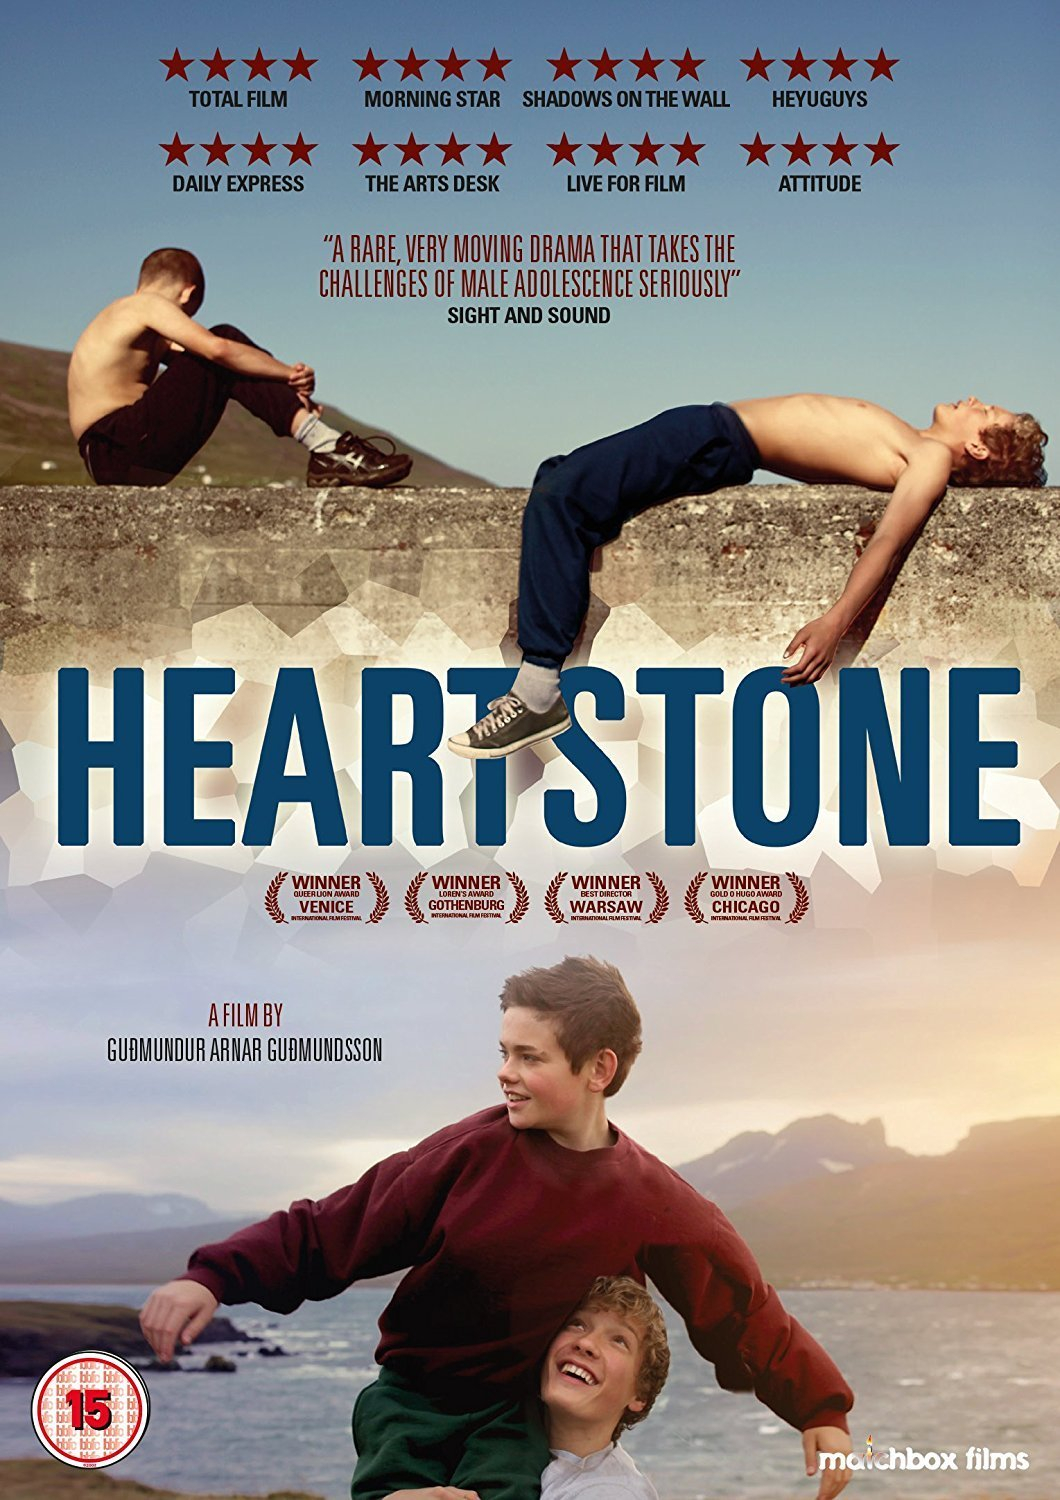 Buy Heartstone